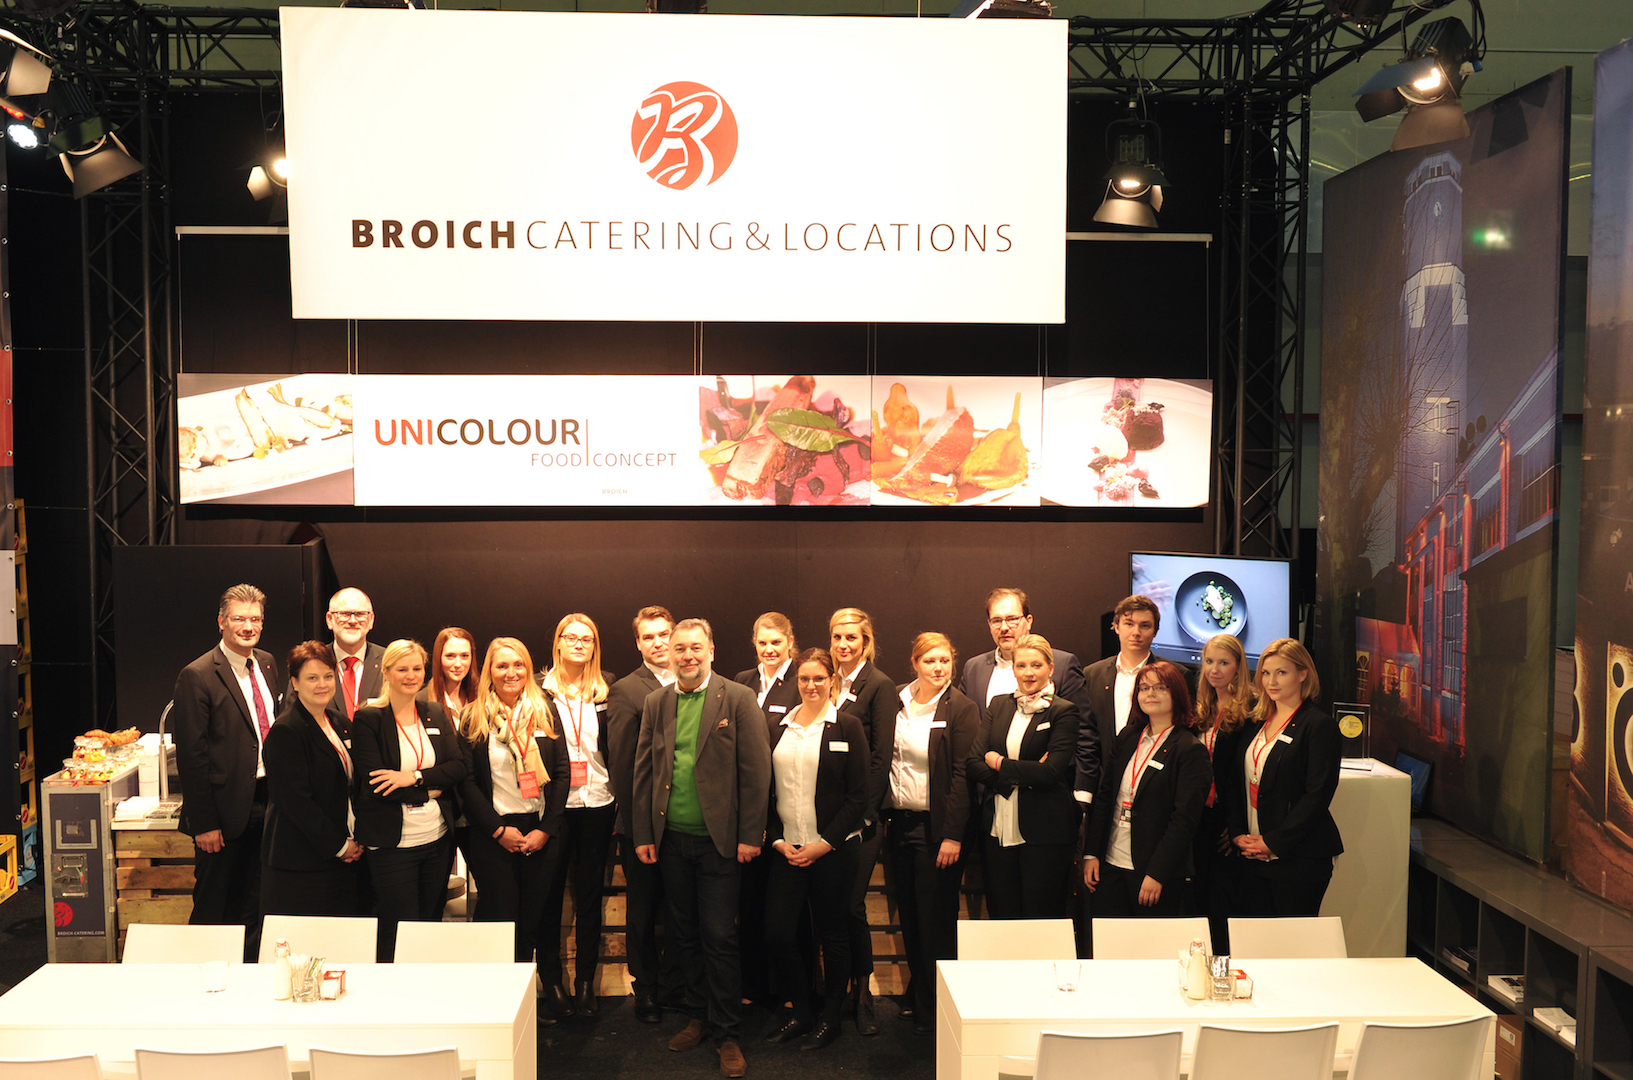 Broich Catering & Locations Veranstaltung 2016 Messe BOE 2016